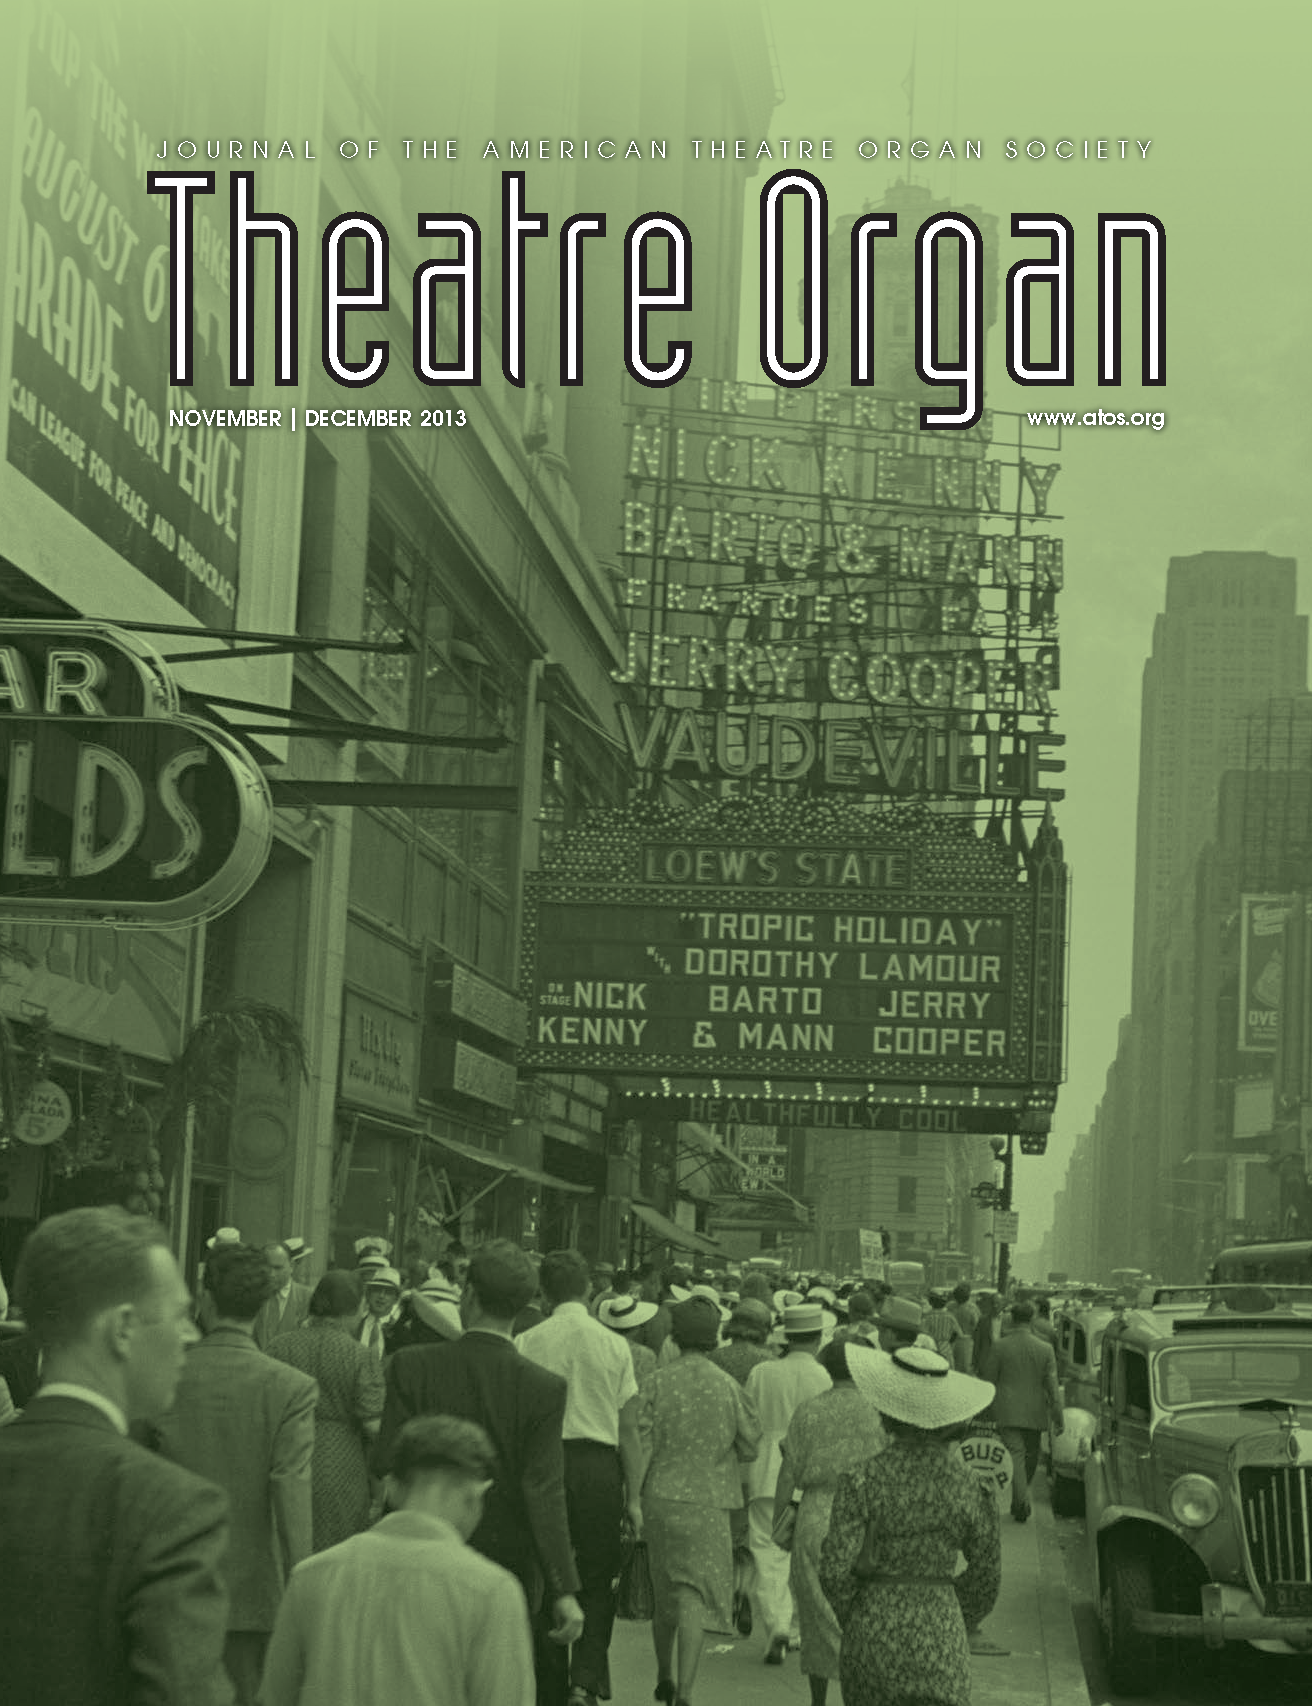 Theatre Organ, November - December 2013, Volume 55, Number 6